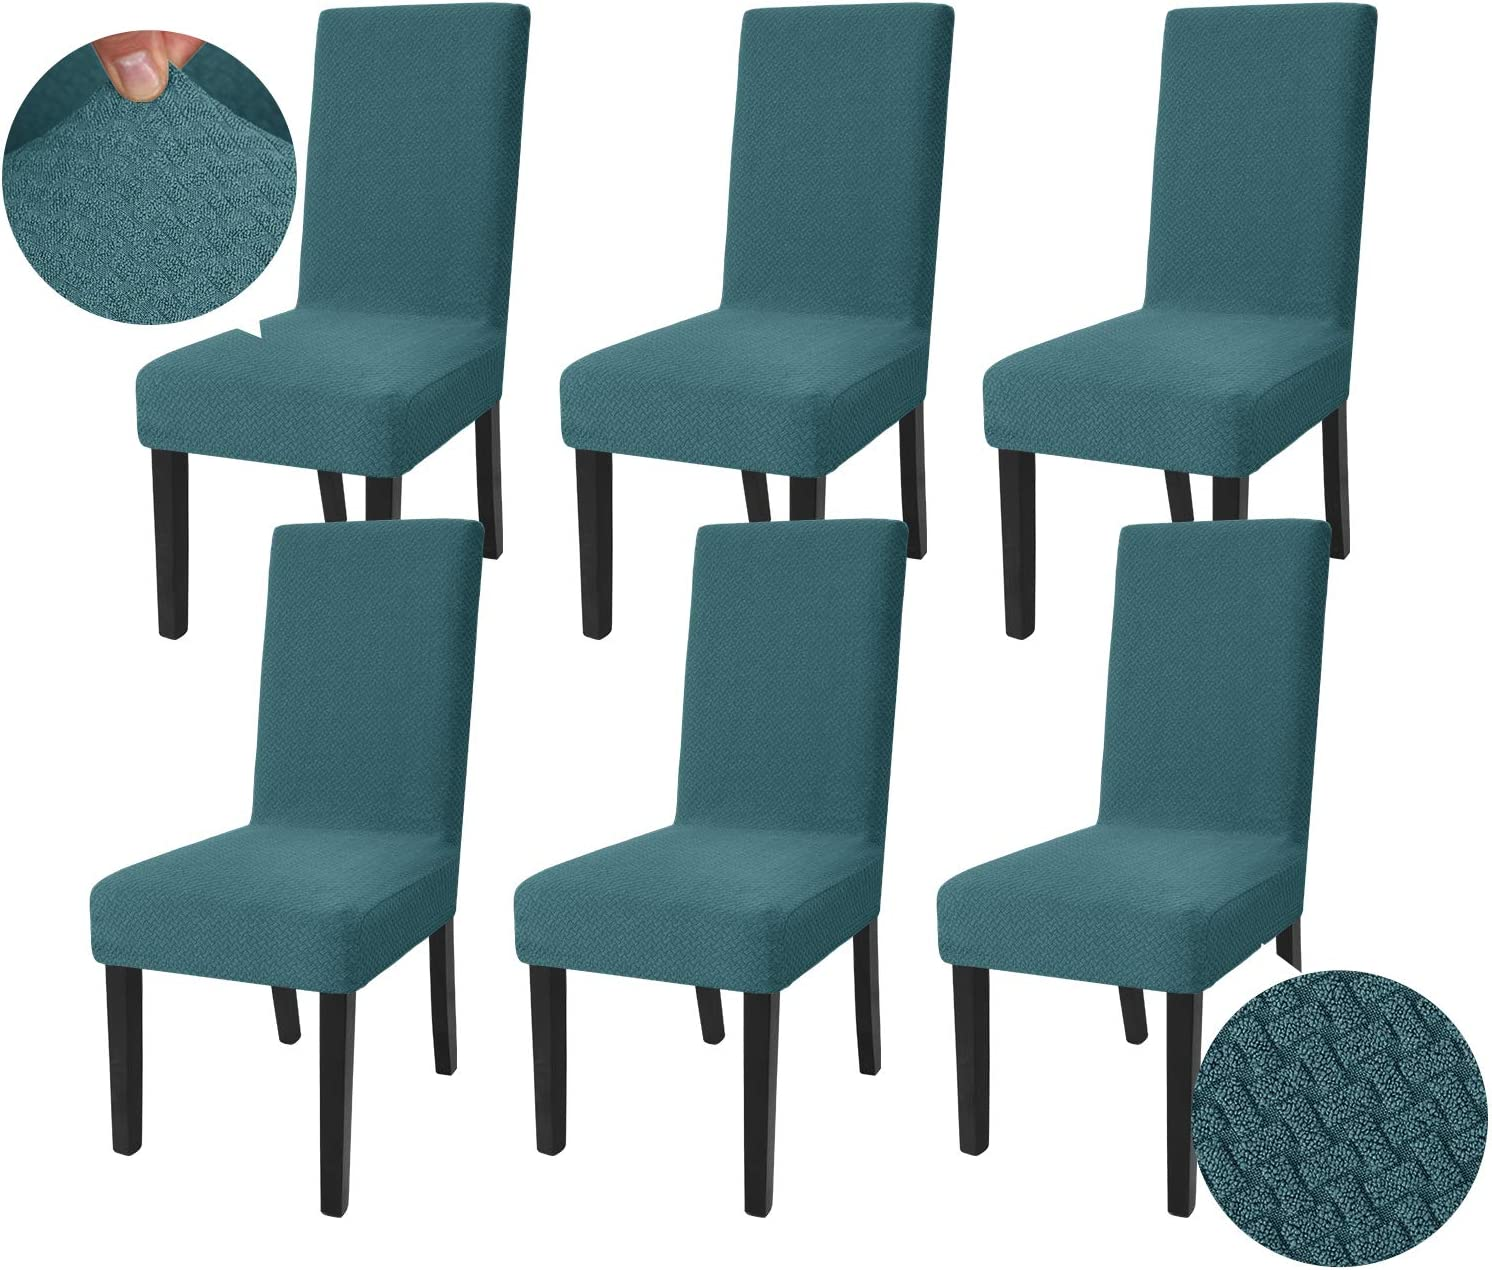 JIVINER Stretch Long Beach Mall Chair Save money Covers for Dining 6 Room Set of Decorative